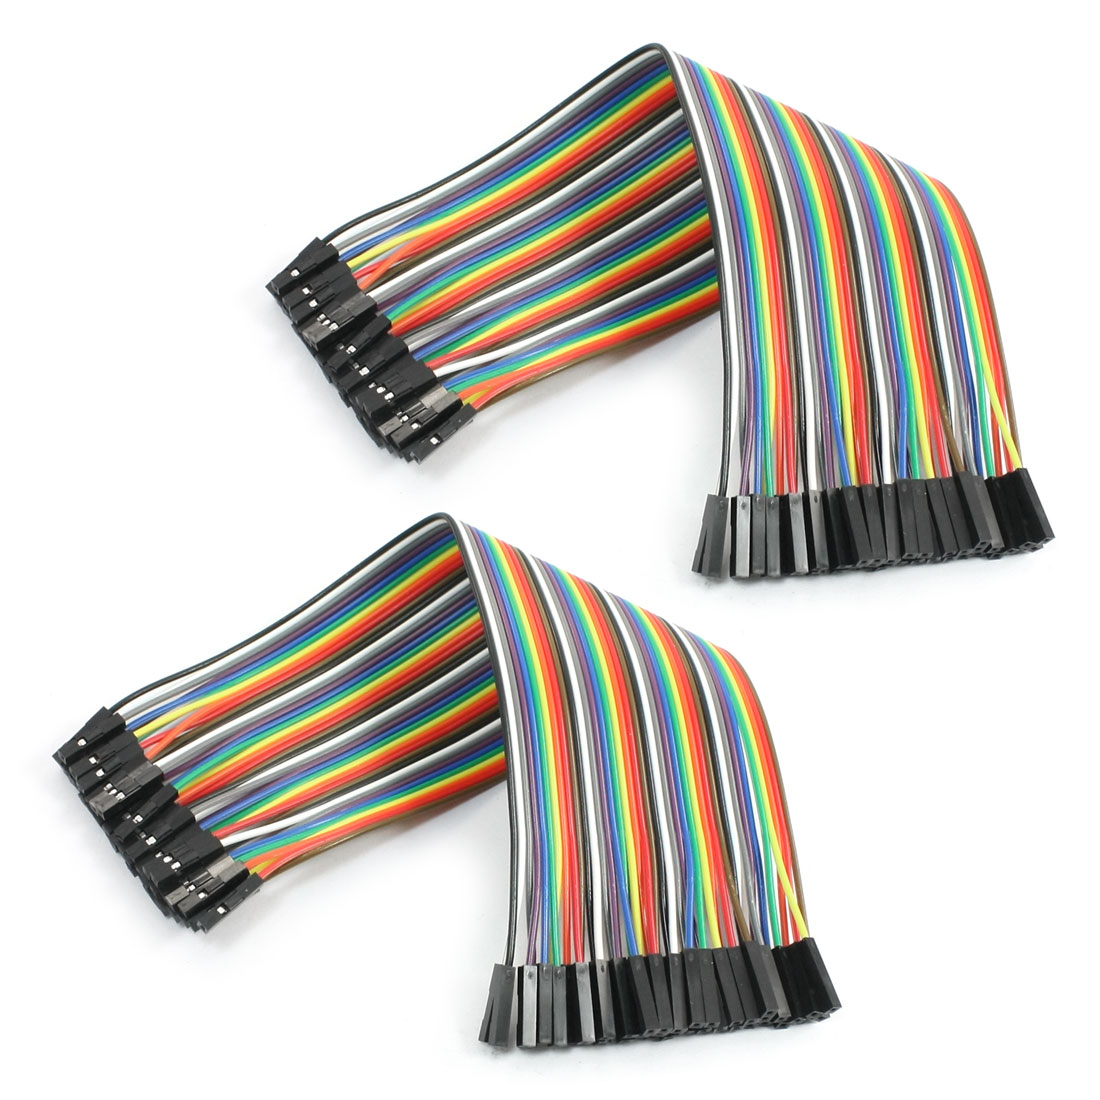 20cm 2.54mm 40 Pin Female to Female F/F Jumper Wire Cable Connector 2 Pcs